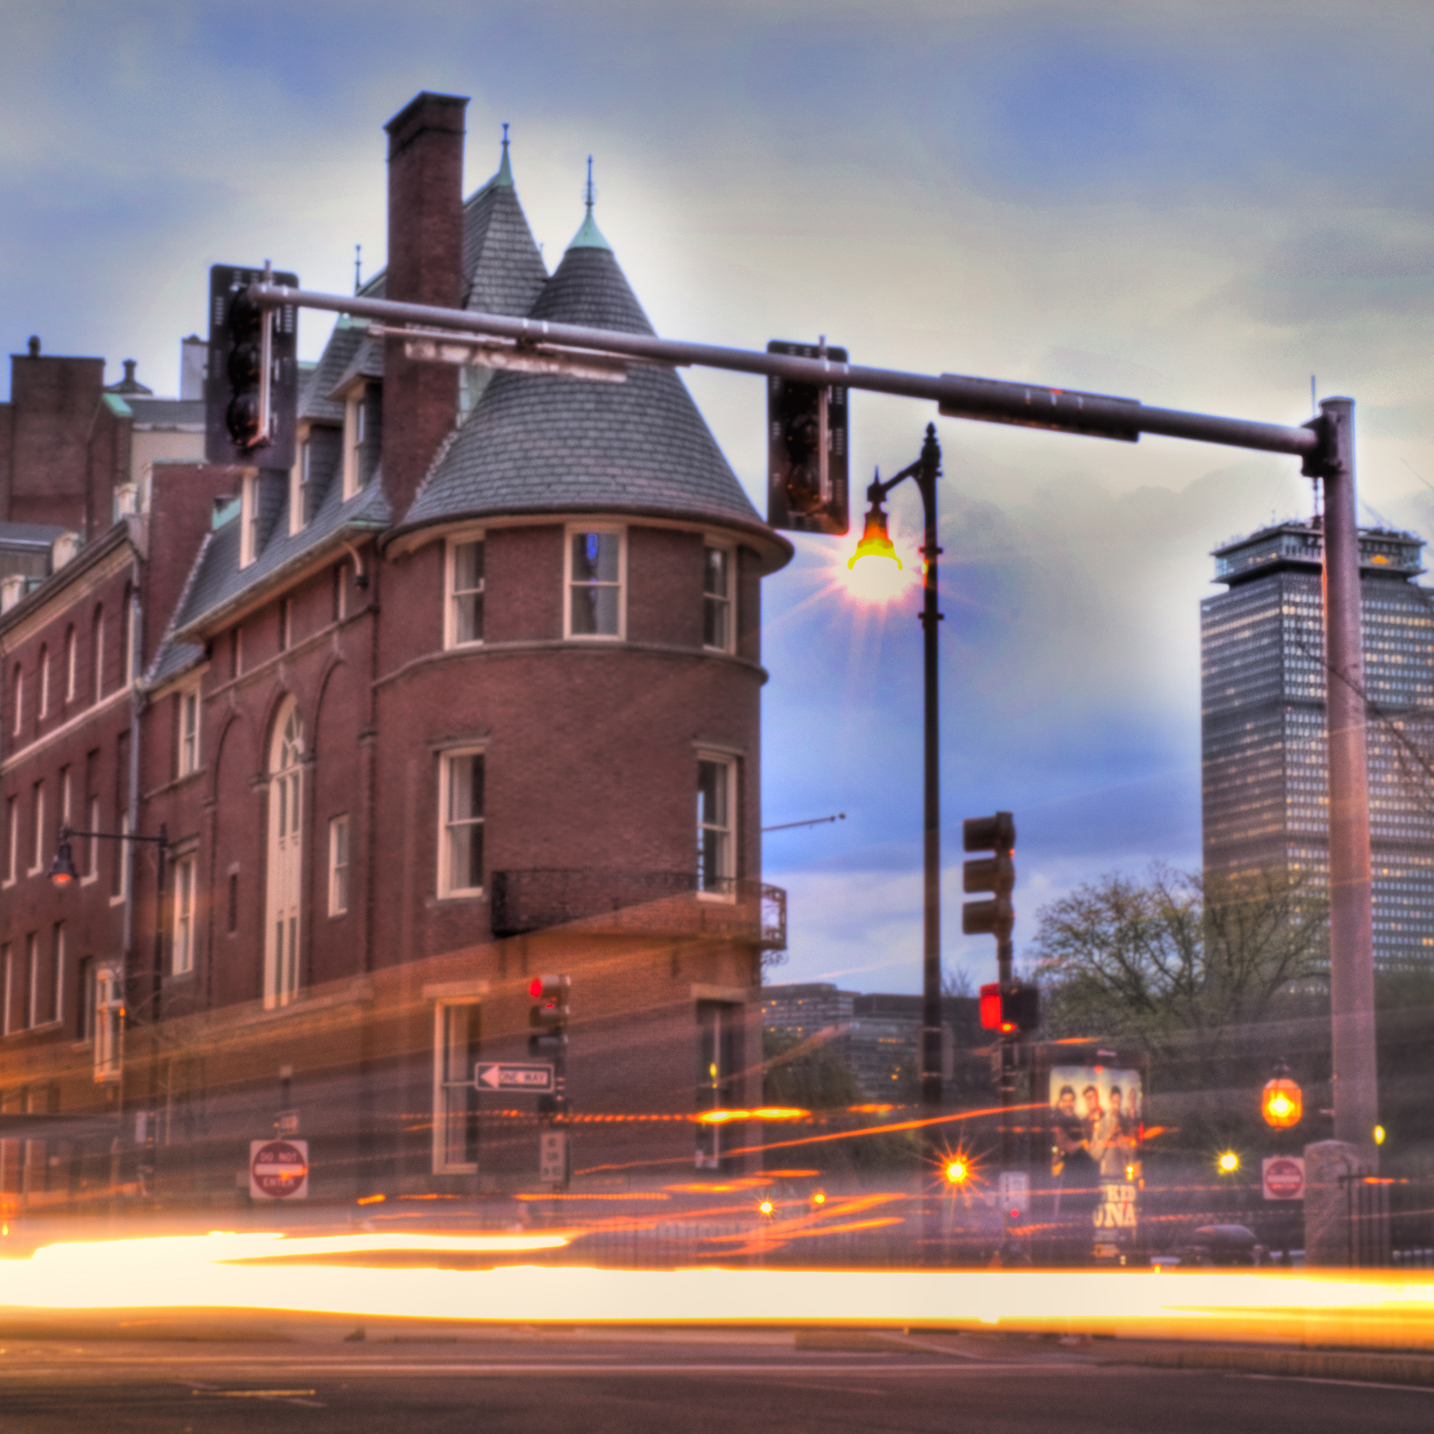 Steve Hamner says the intersection of Beacon Street and Commonwealth Avenue in Boston's Kenmore Square is one place that makes his city such a busy hub.